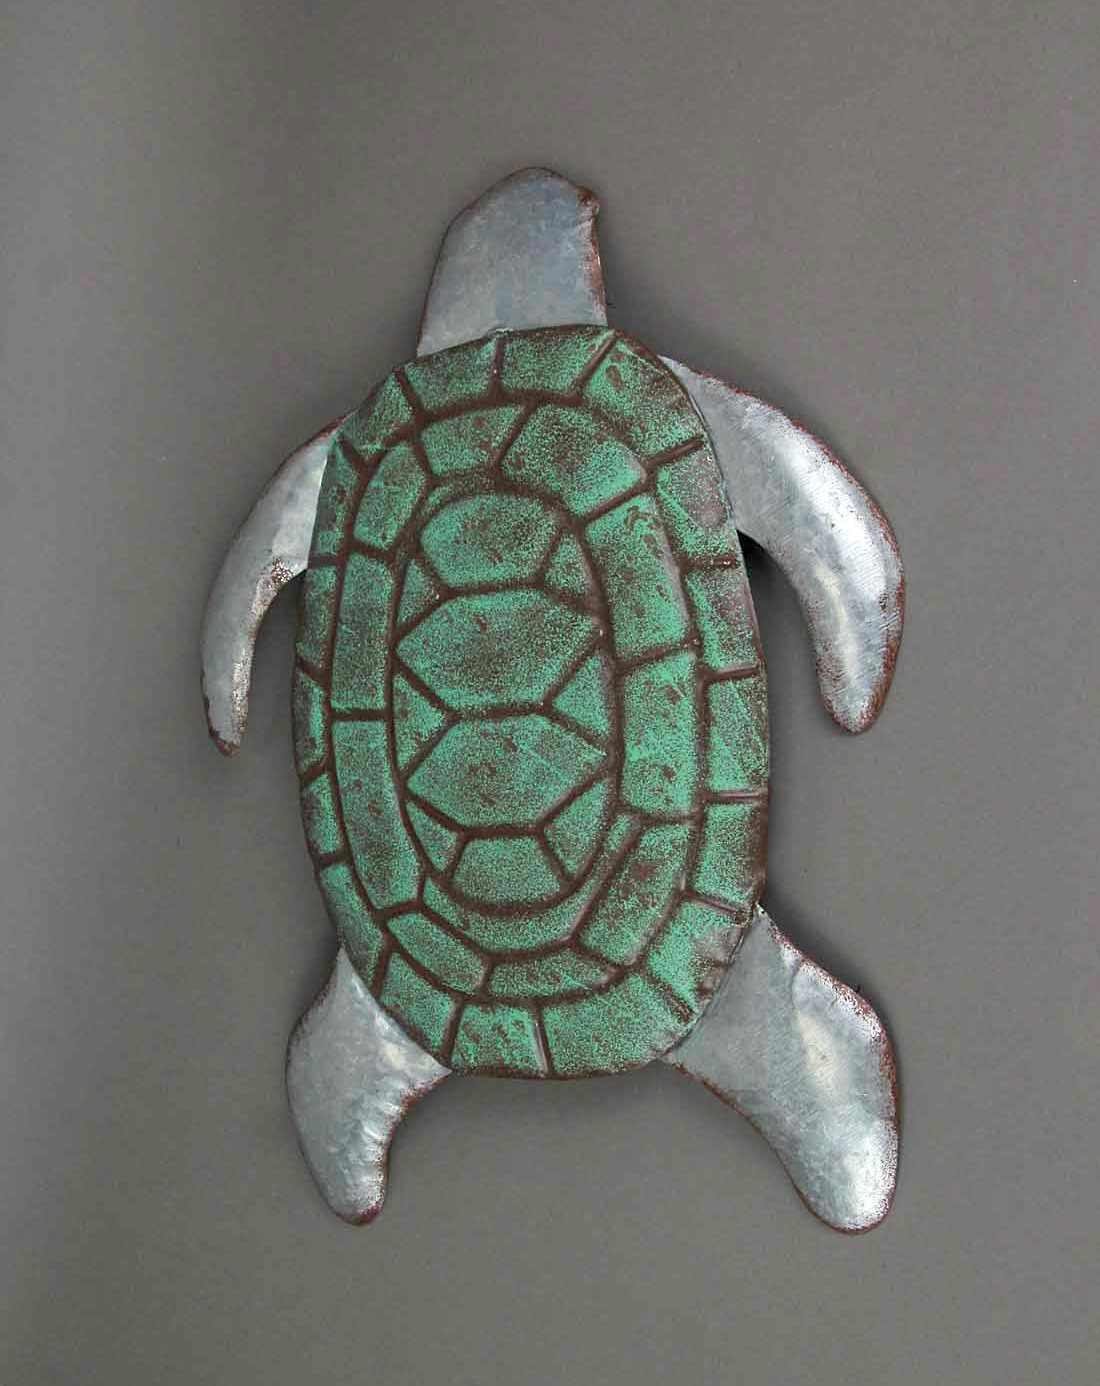 thumbnail 3 - Galvanized Zinc Finish Metal Sea Turtle Wall Hanging With Painted Shell